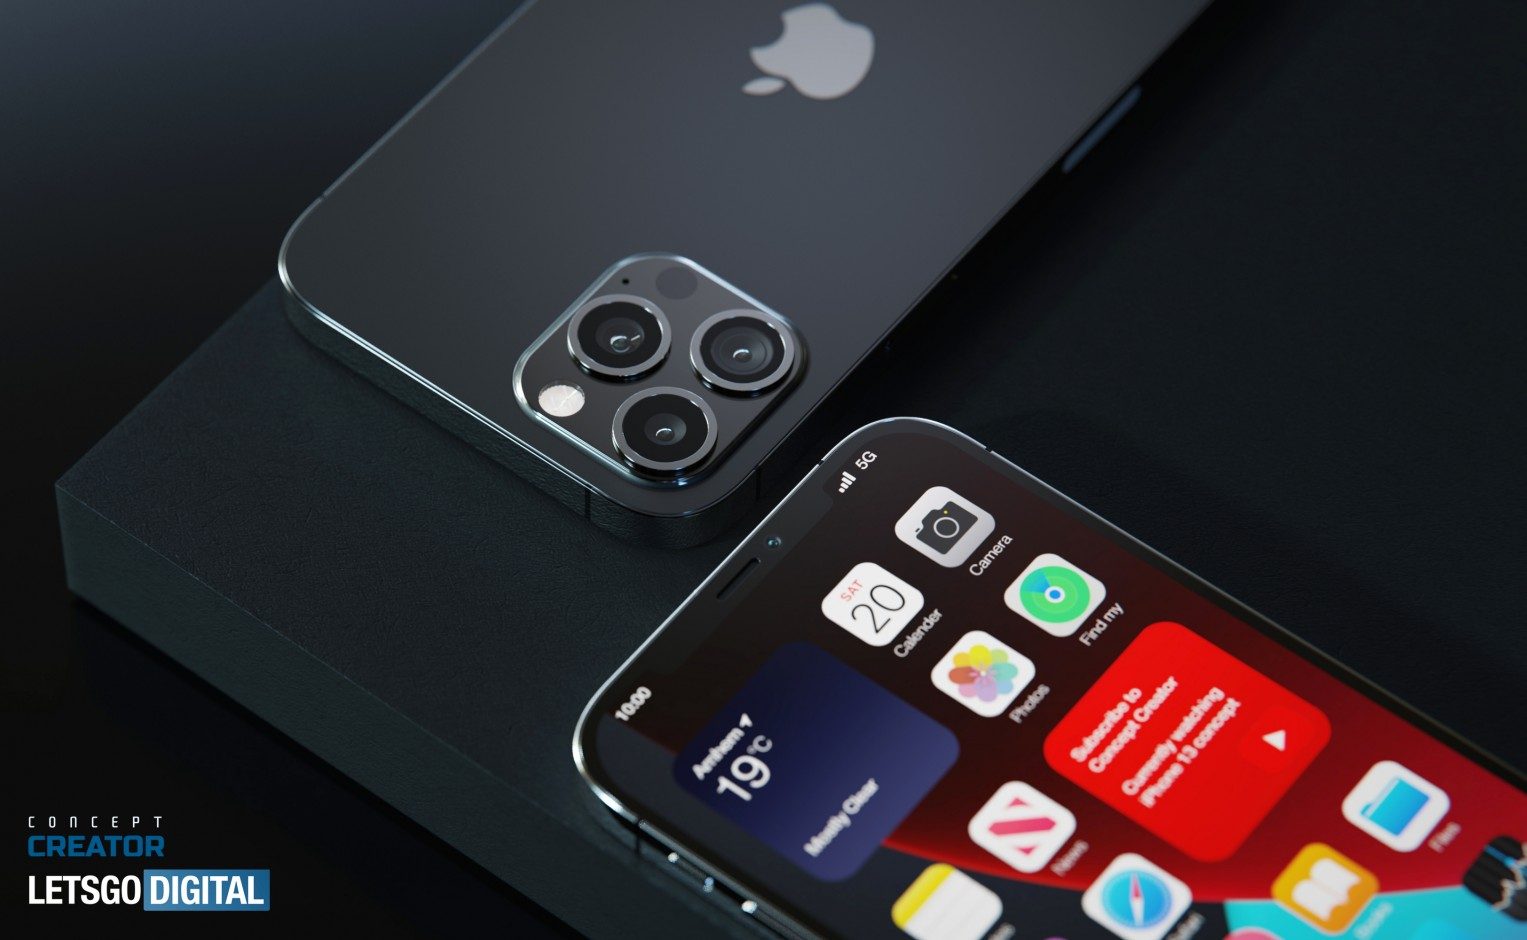 he-lo-anh-render-va-video-iphone-12s-pro-touch-id-an-va-khong-cong-ket-noi-2